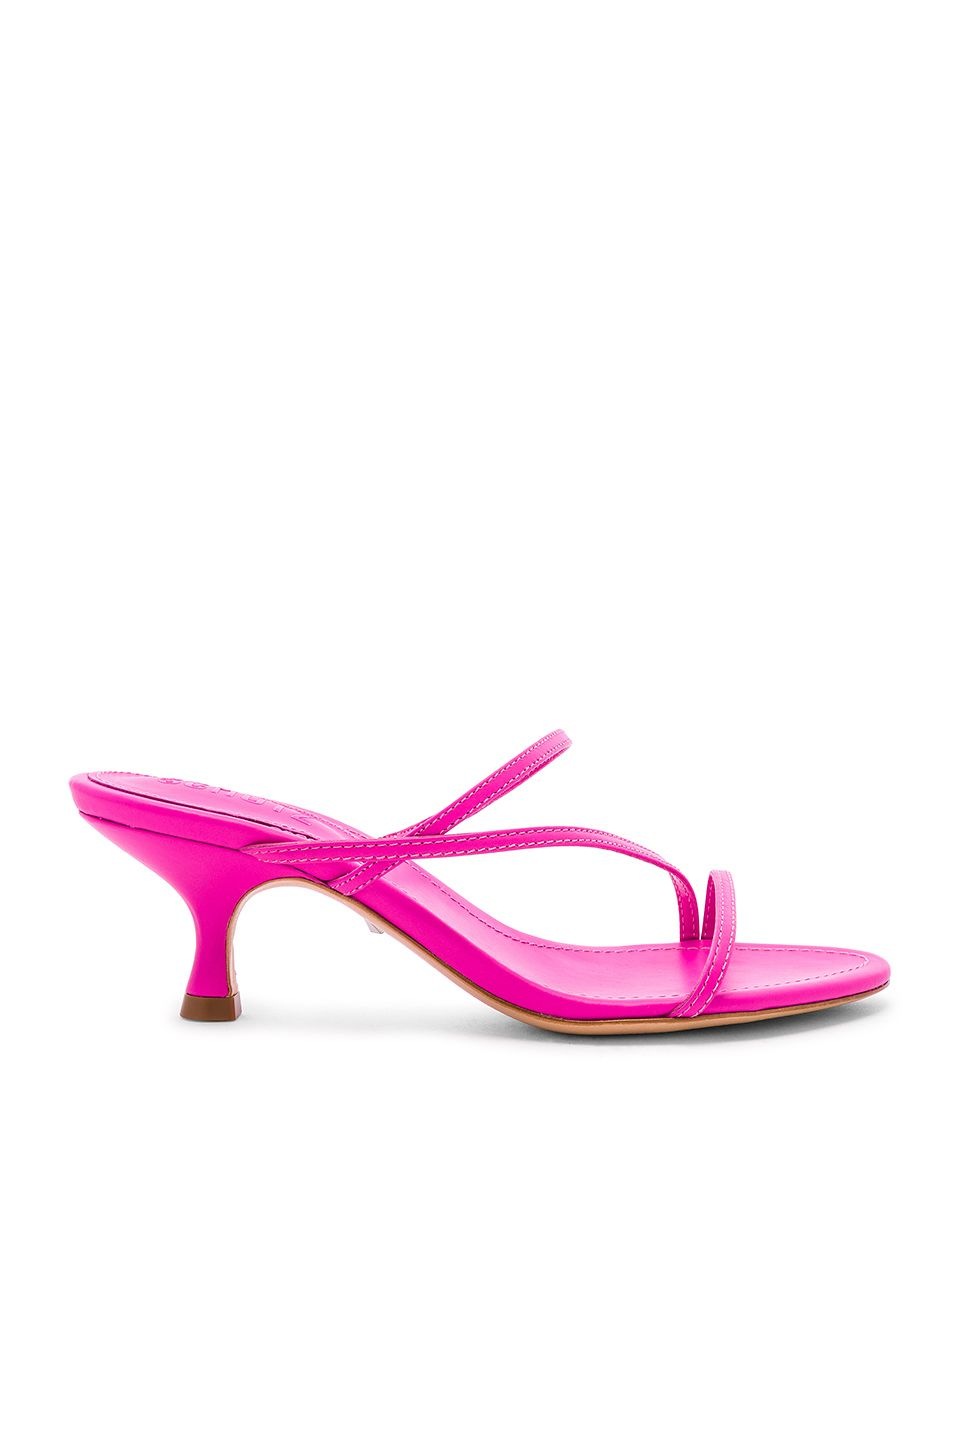 8c051b312 Schutz Evenise Sandal in Neon Pink | shoes in 2019 | Sandals, Shoes ...